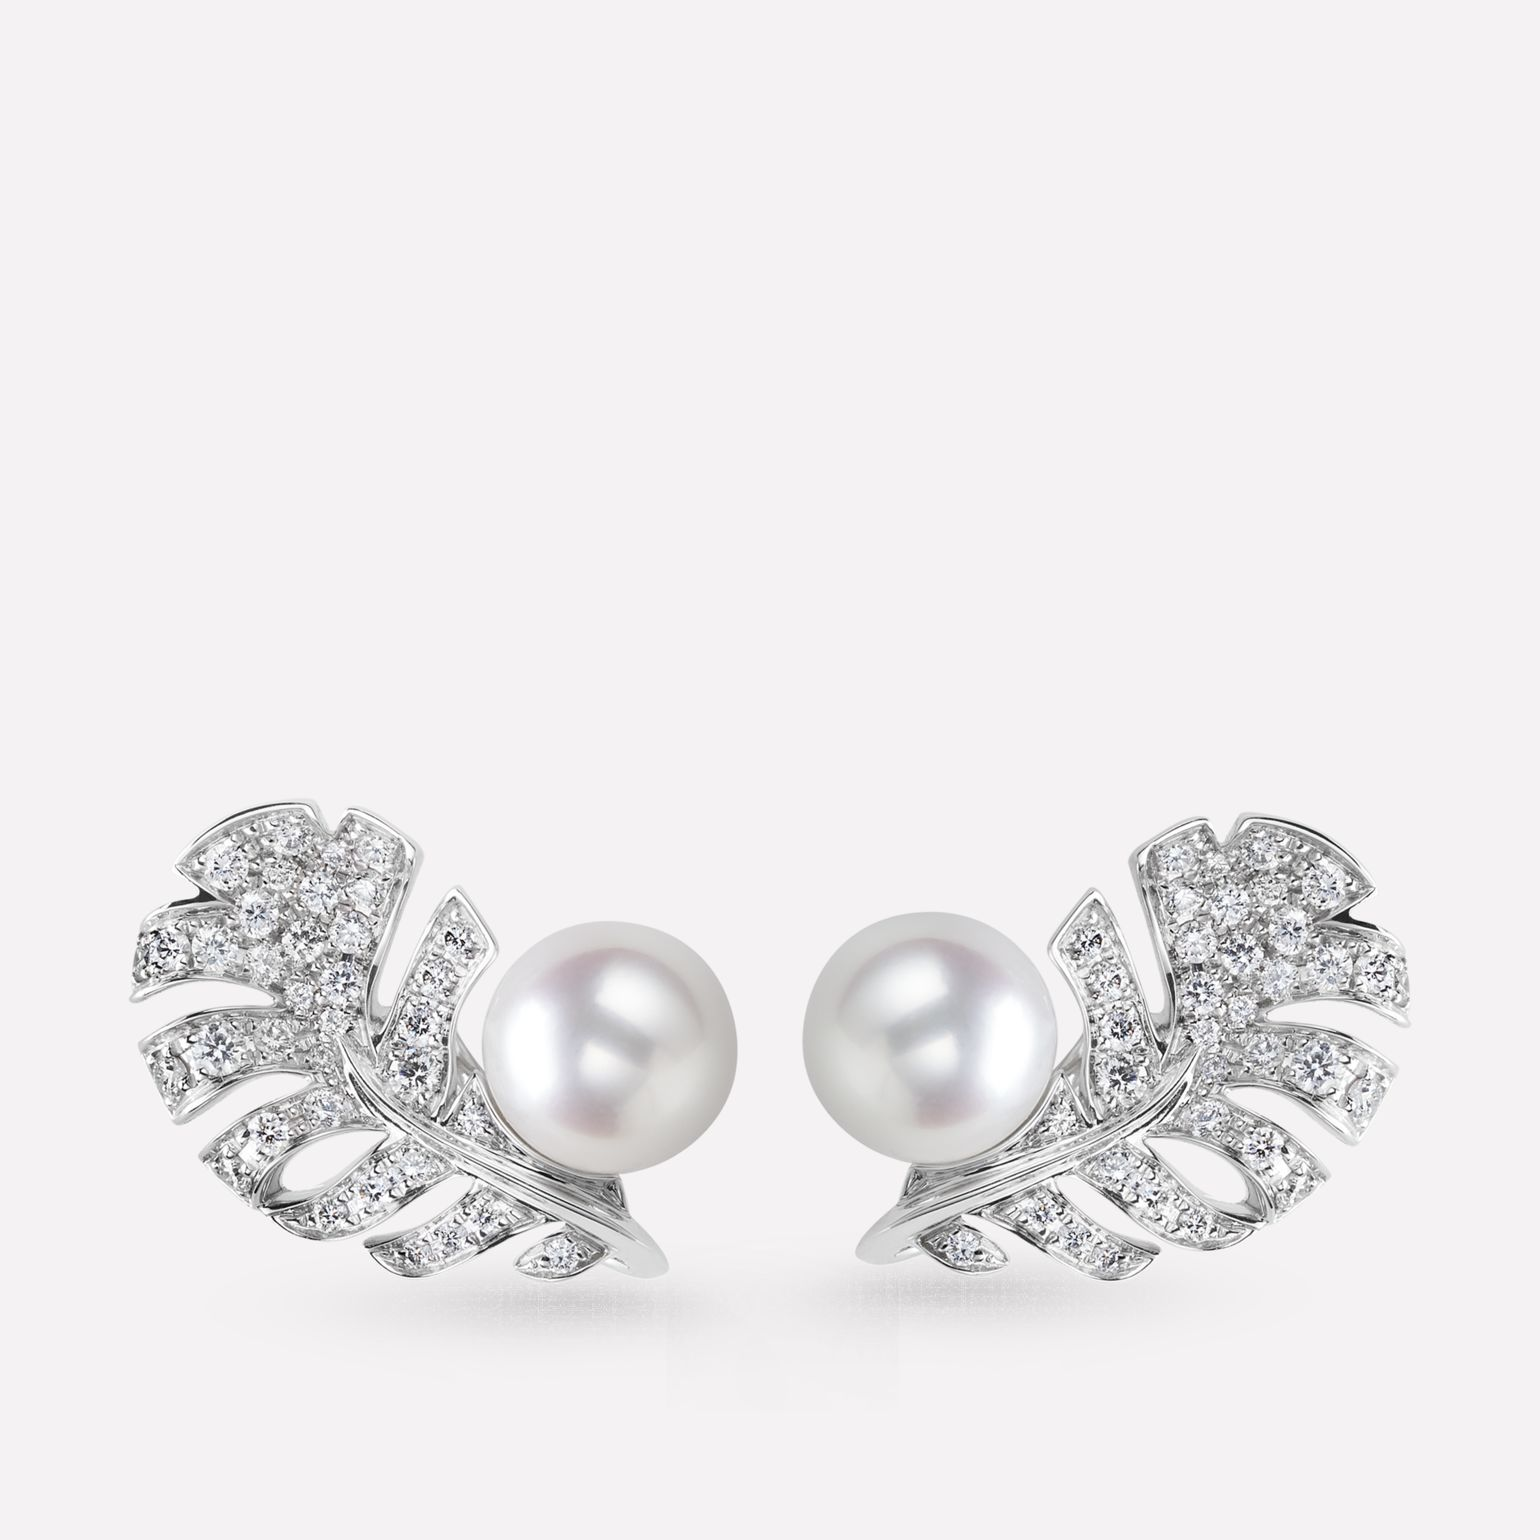 Plume de CHANEL earrings 18K white gold, diamonds, cultured pearls